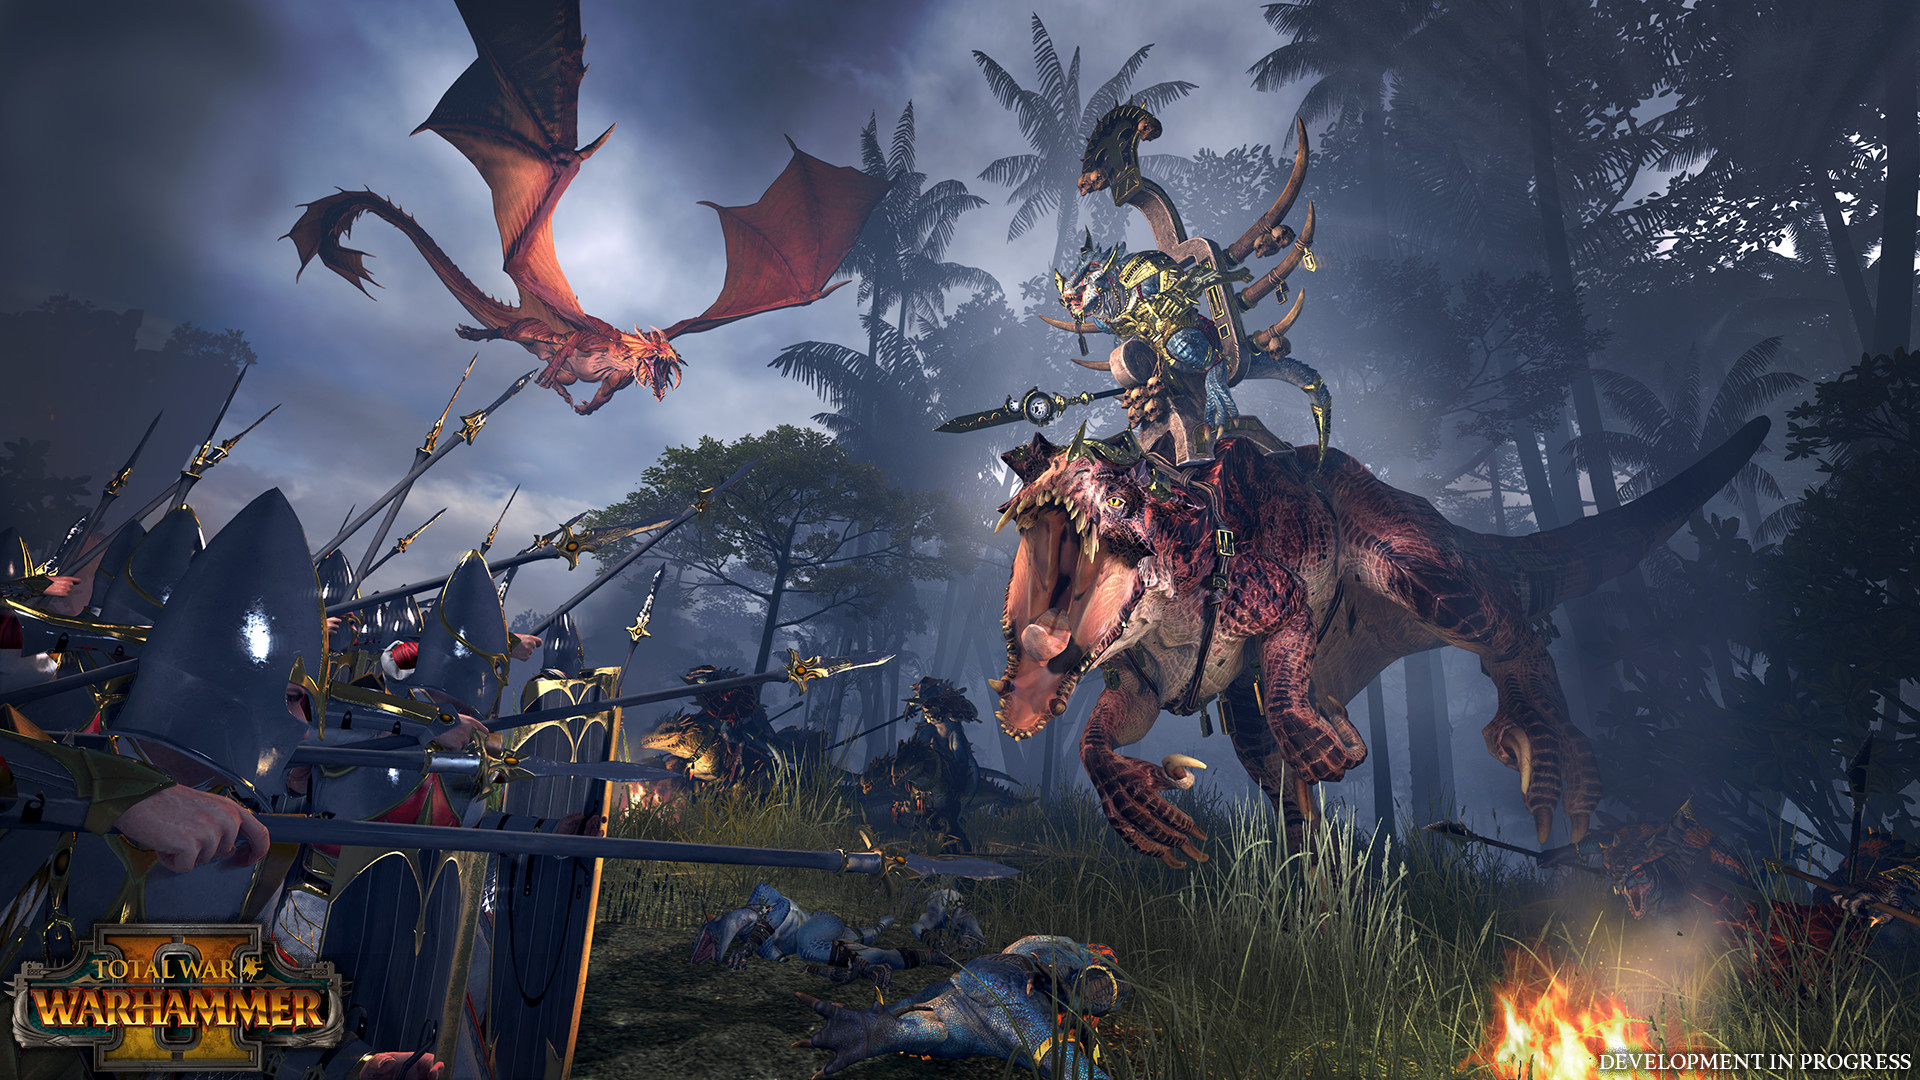 The new game will feature its own collection of monsters and lords